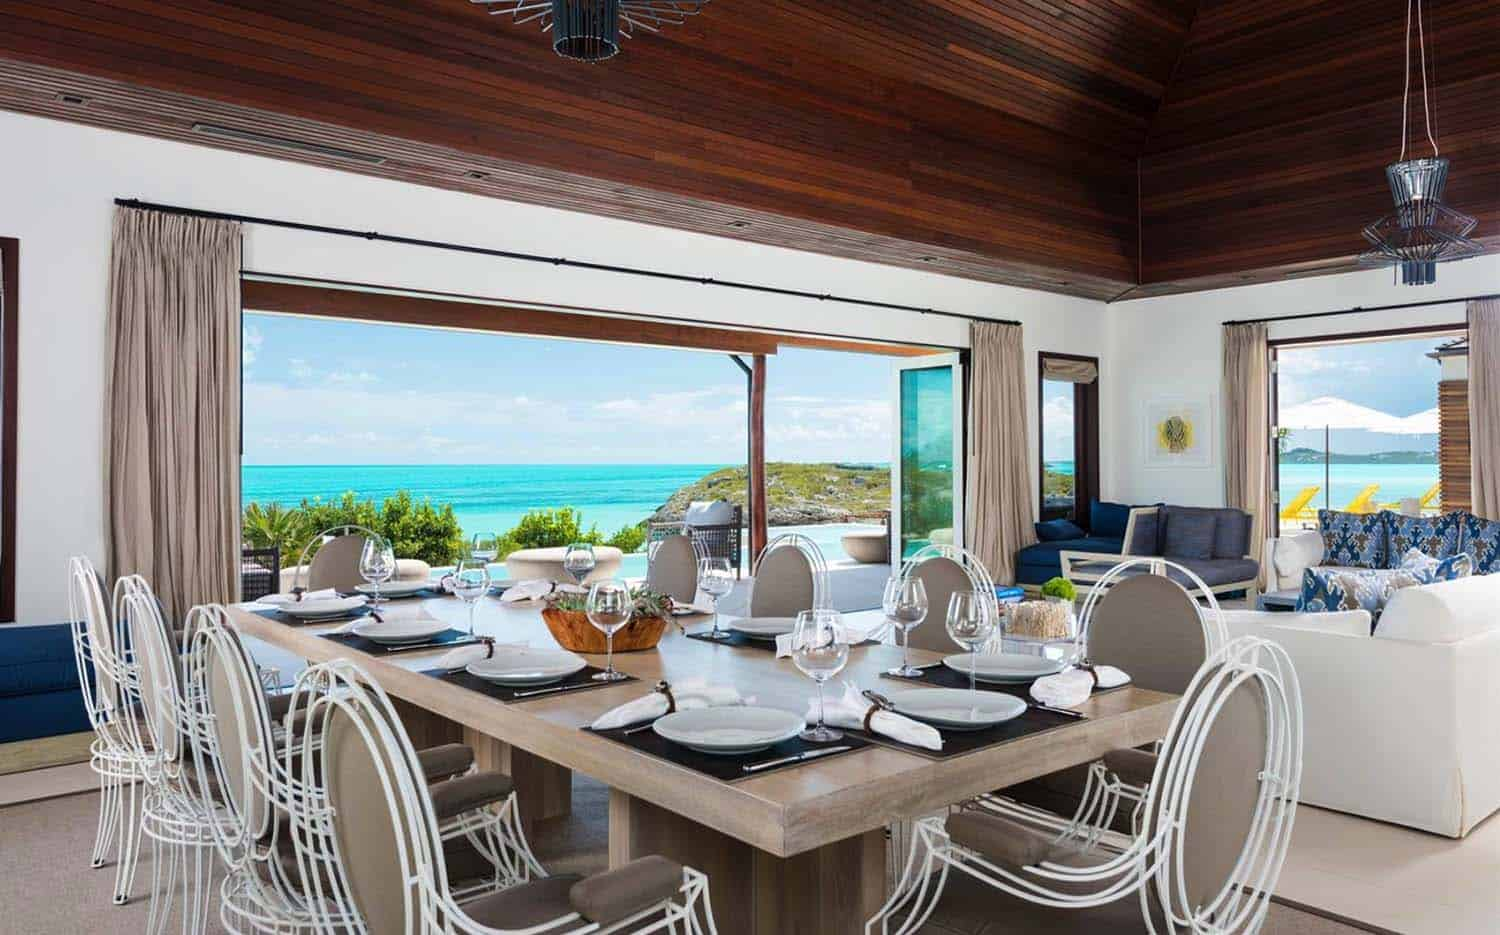 Turtle House-Turks And Caicos Islands-11-1 Kindesign